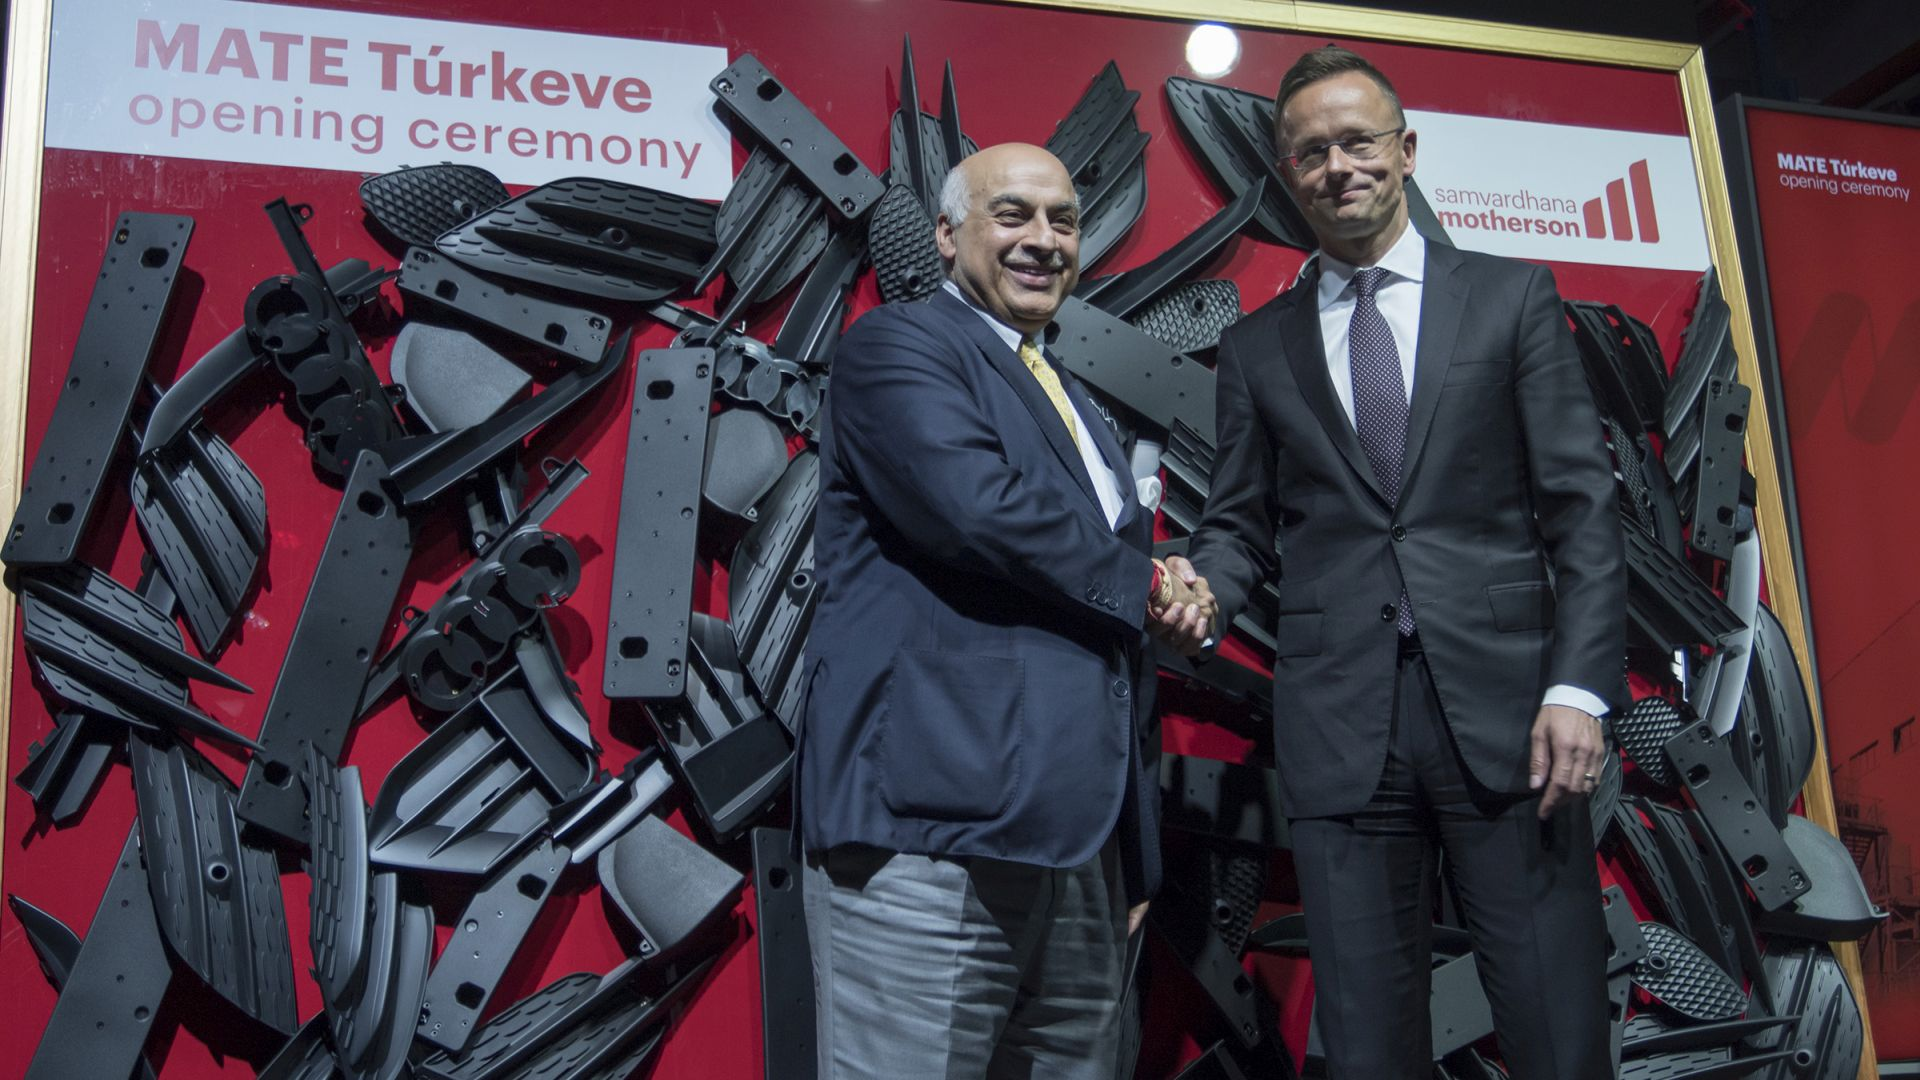 New investment of the Samvardhana Motherson Group in Hungary has been inaugurated